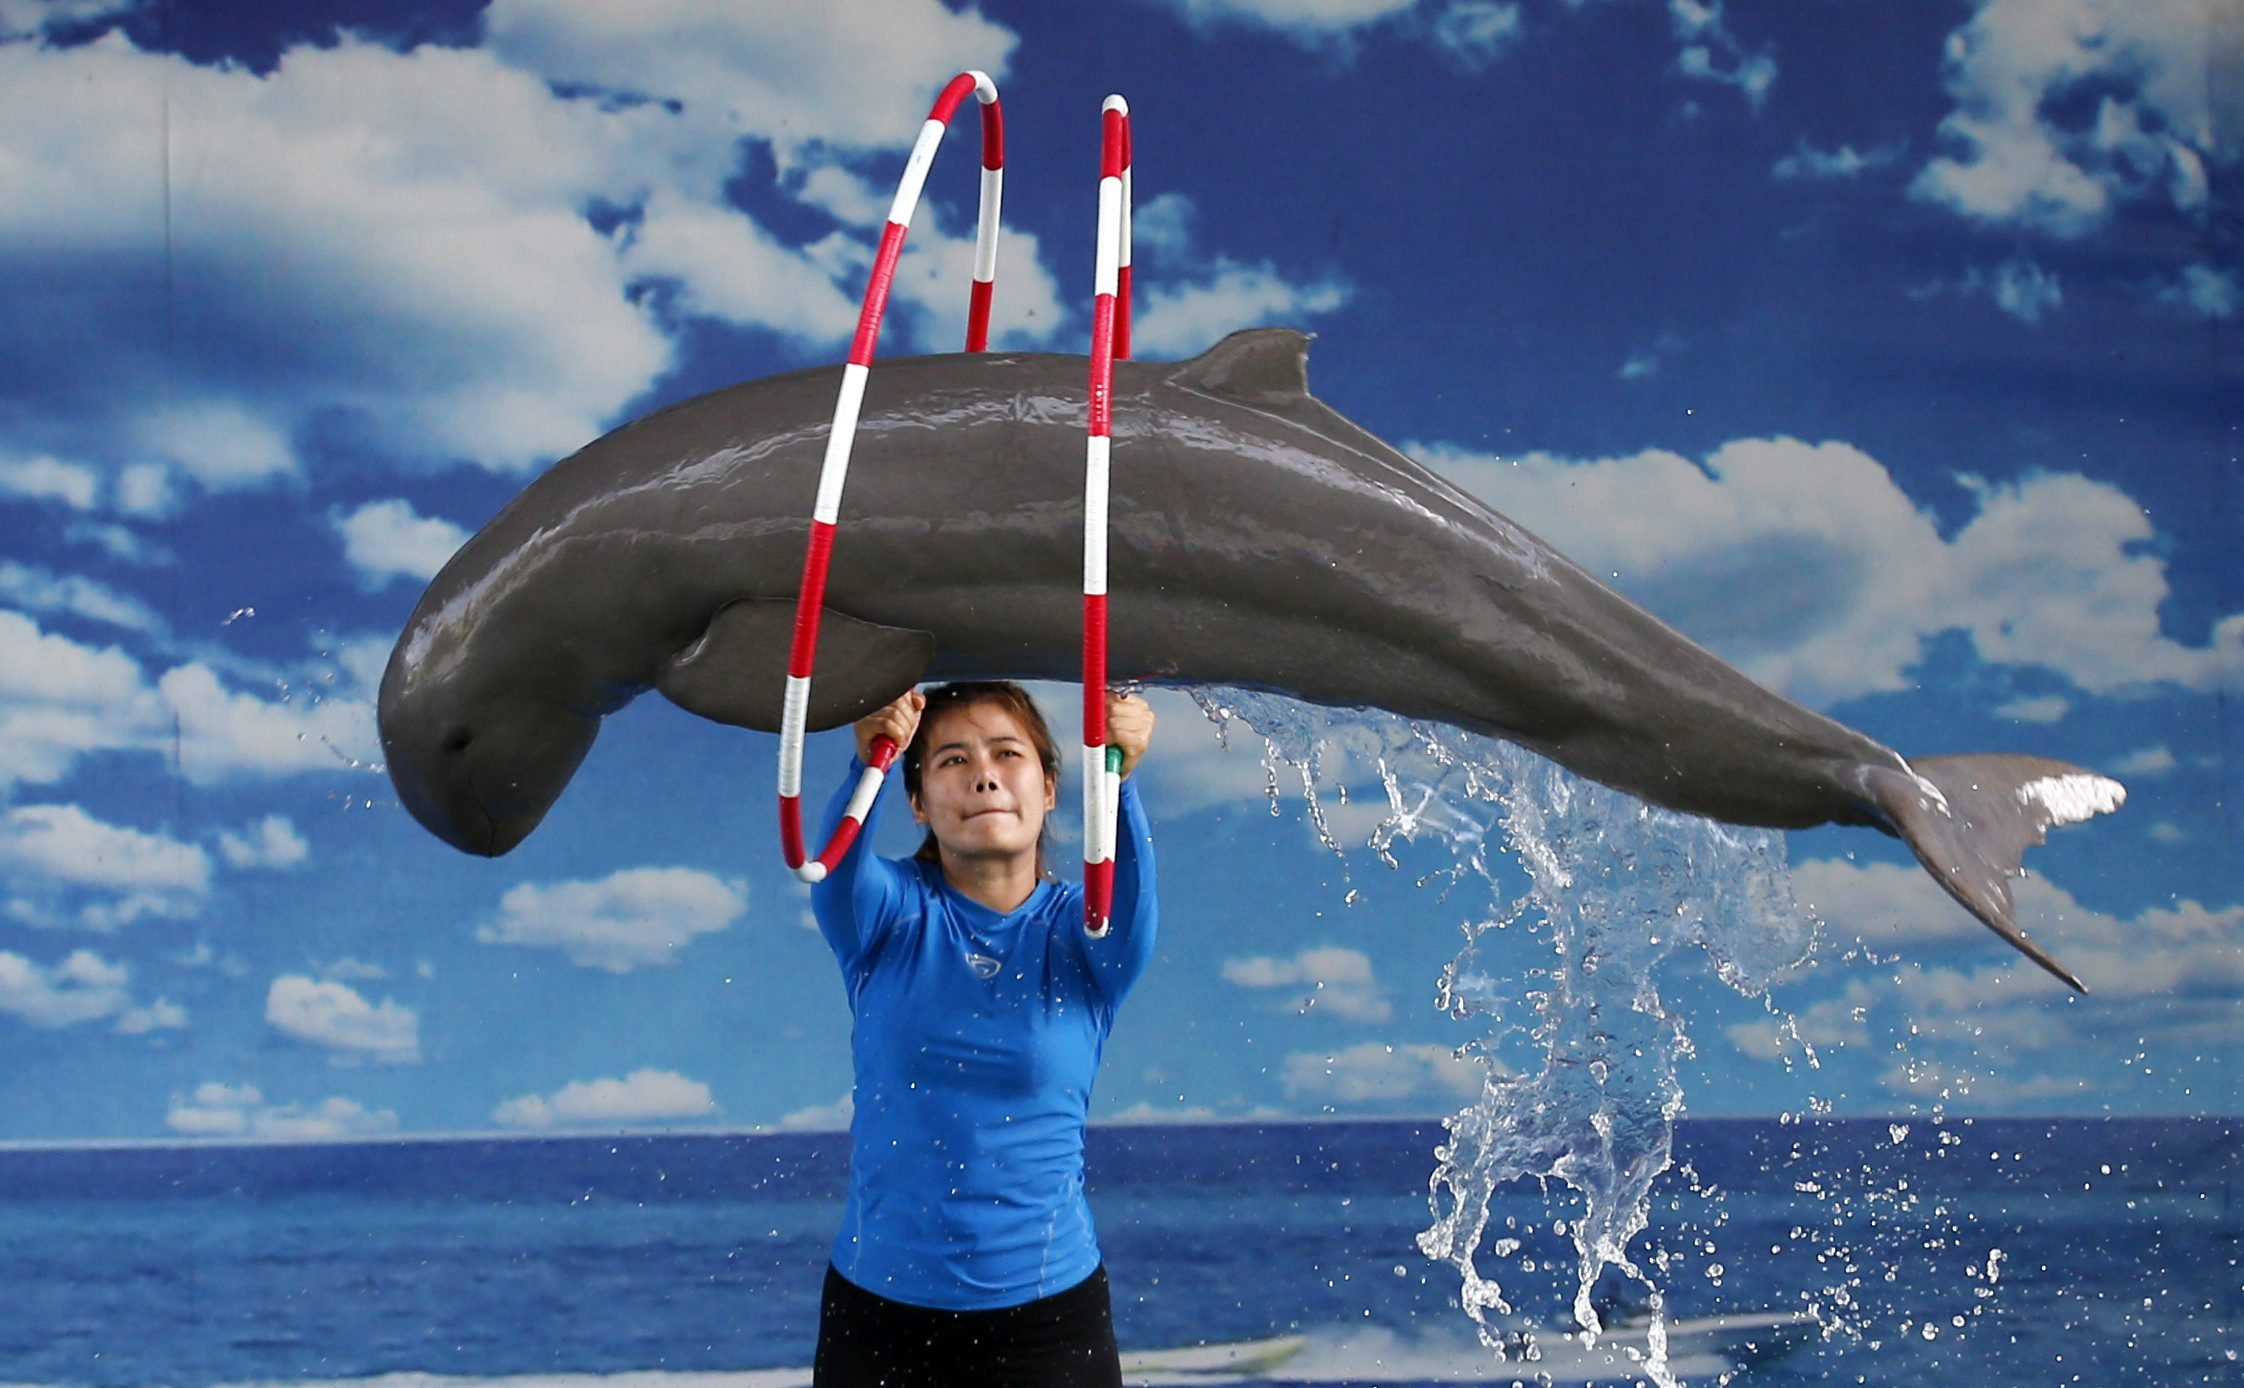 Aug. 8, 2014. An Irrawaddy Dolphin is made to jump through hoops during a performance at Pattaya Dolphin World and Resort, in Pattaya, Thailand.